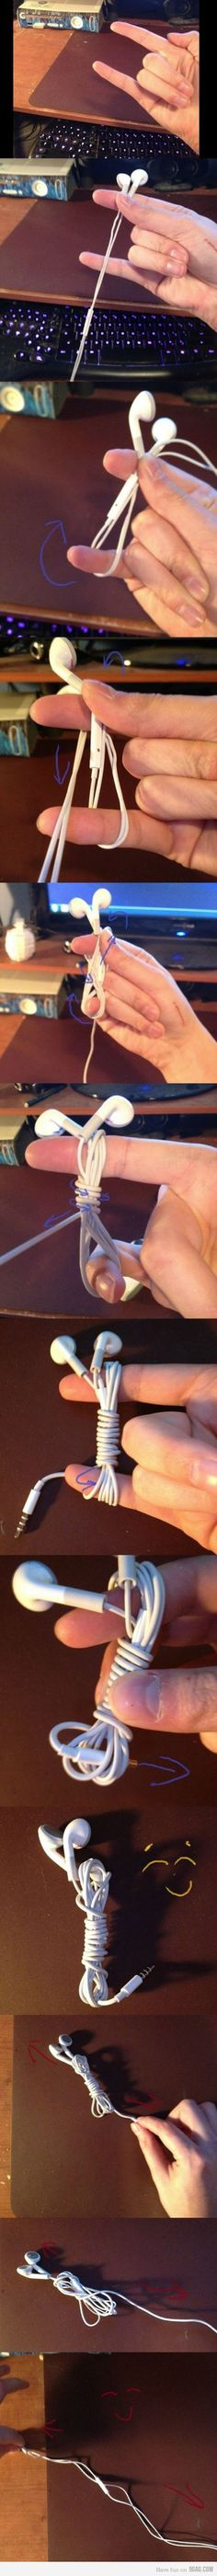 A little time consuming to do, but no more than trying to get the headphones out of a knotted mess.